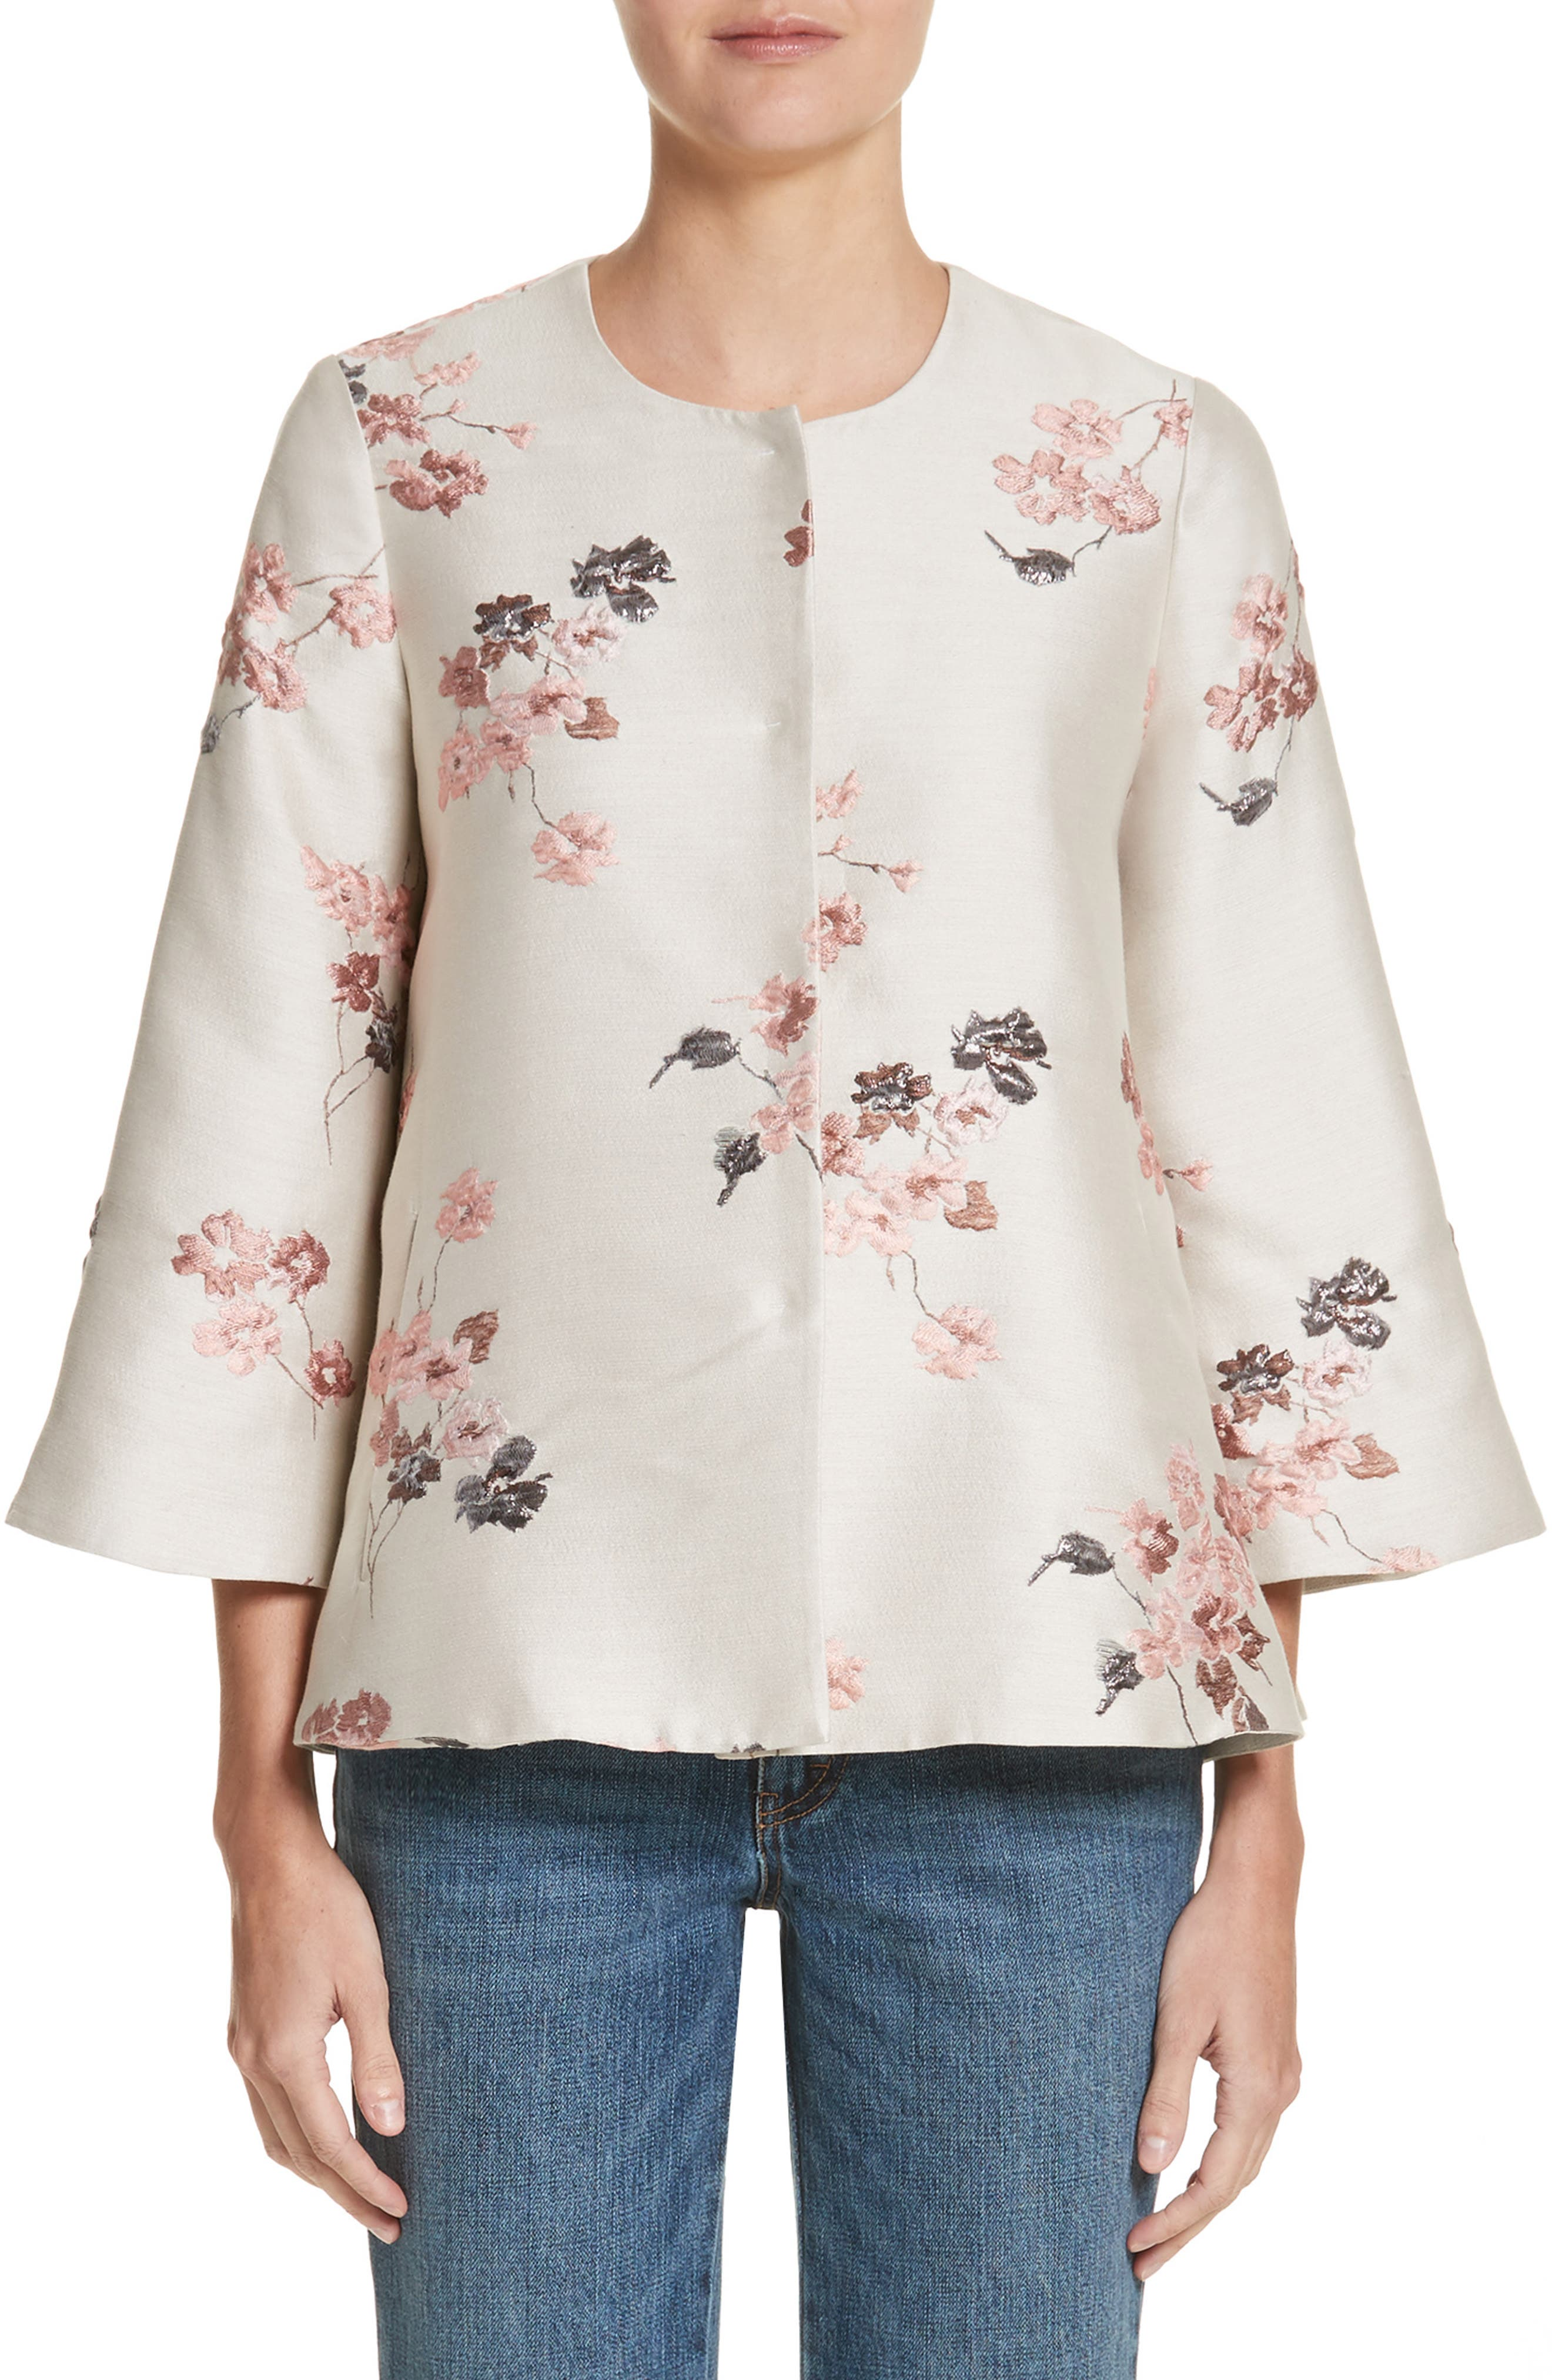 Co Floral Jacquard Swing Jacket